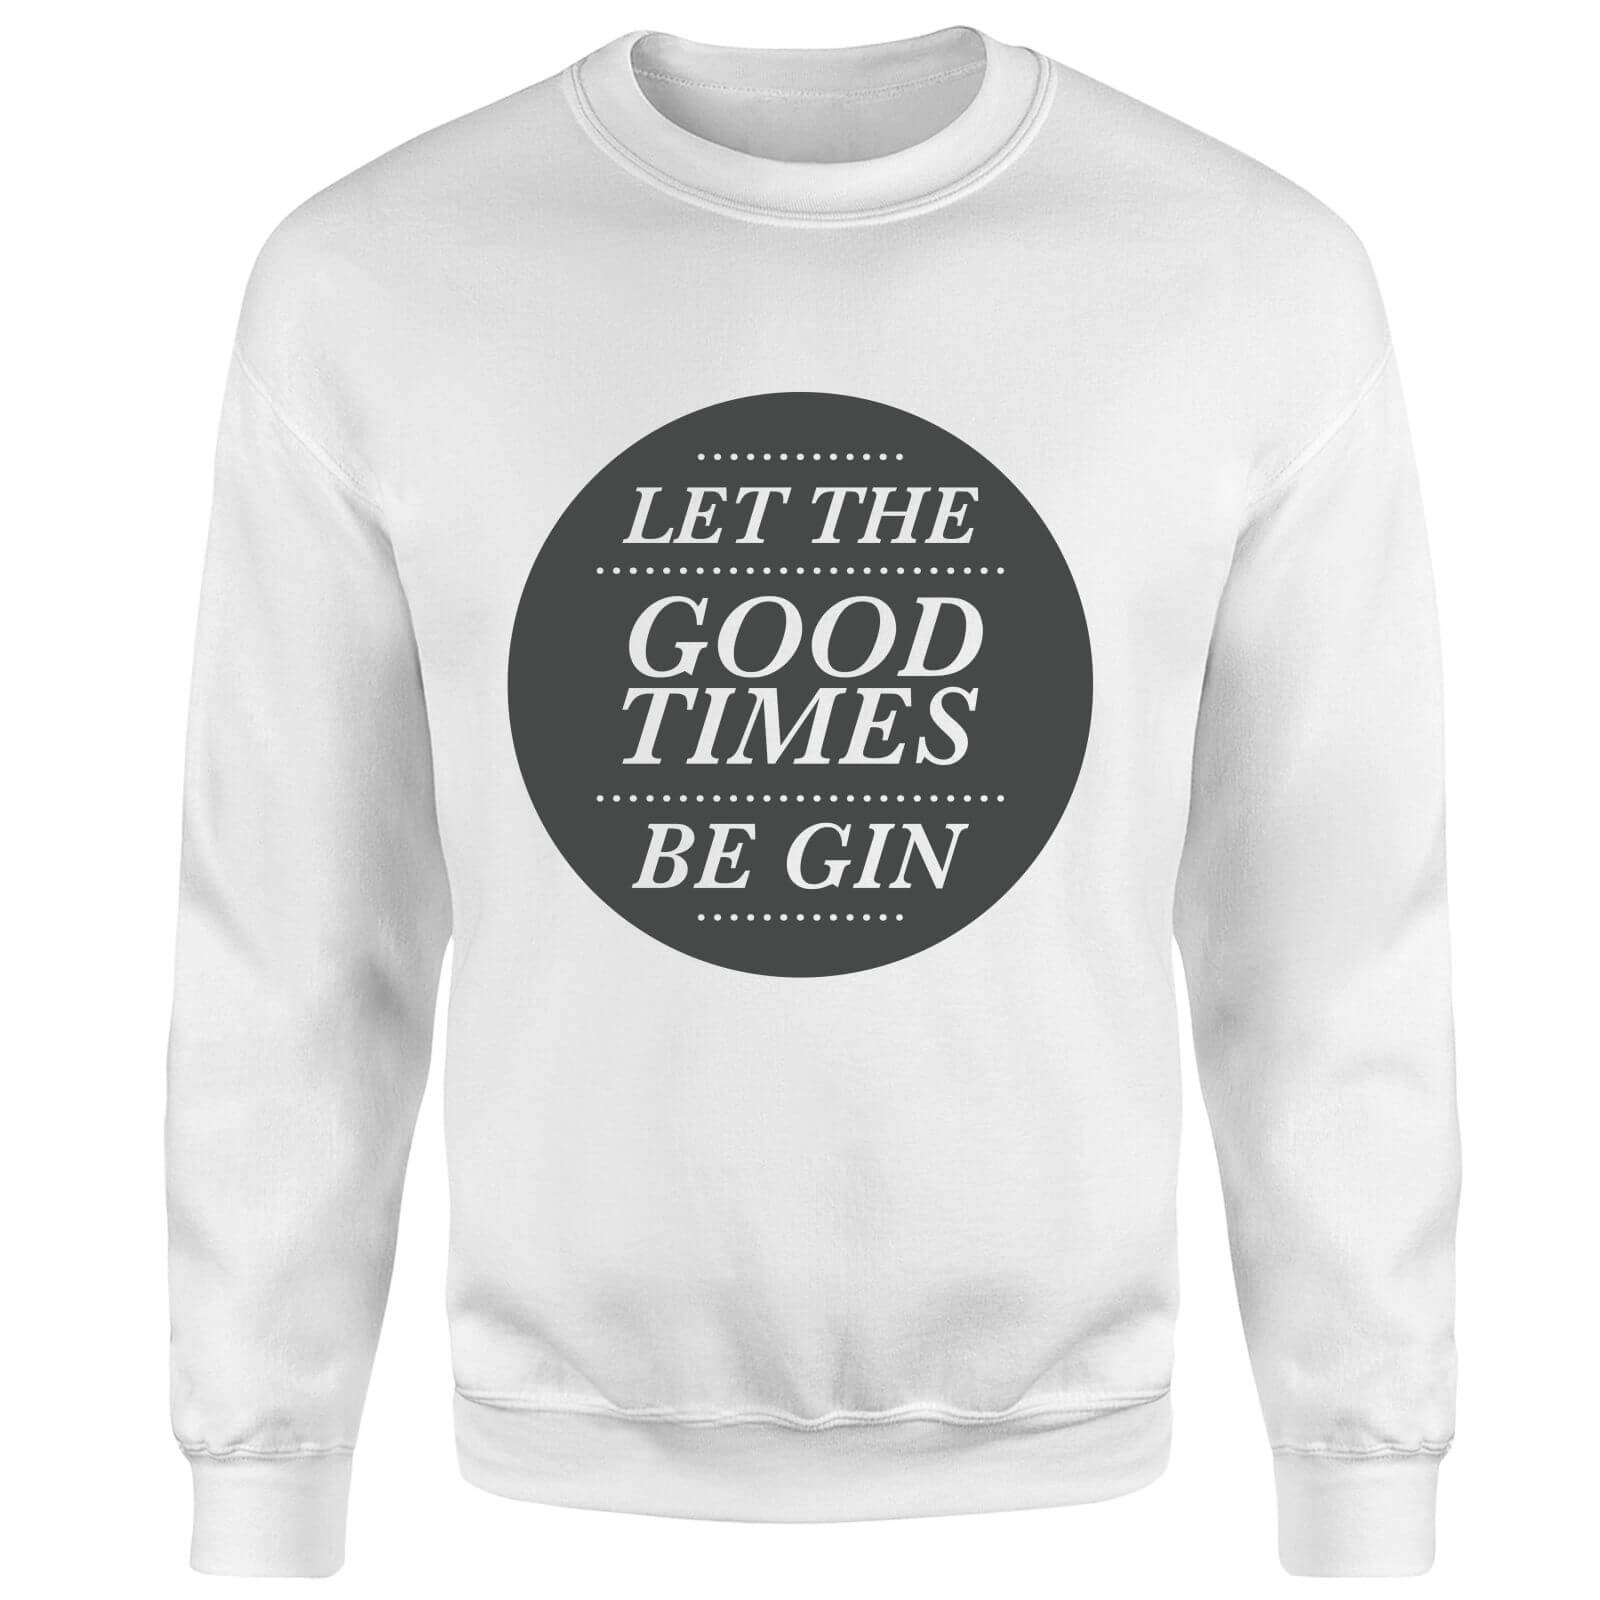 Let the Good Times Be Gin Sweatshirt - White